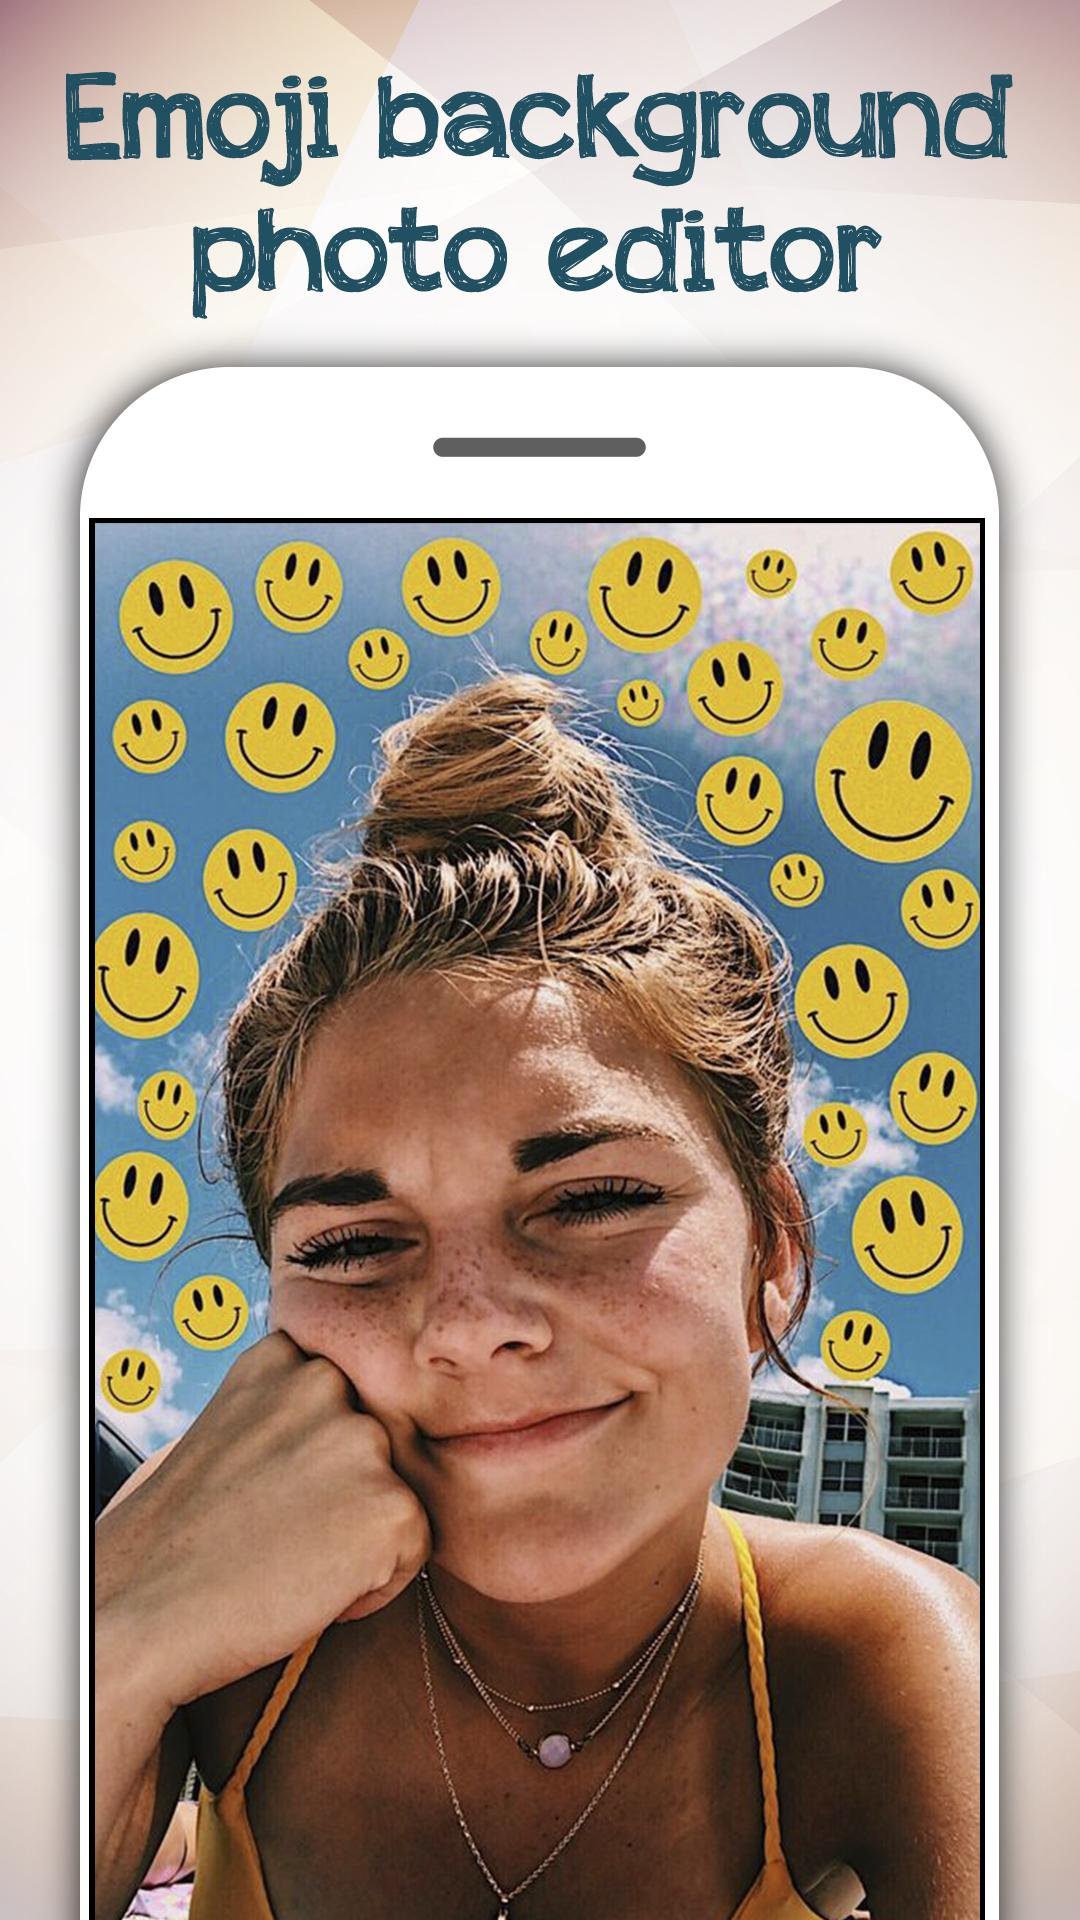 Emoji Background Photo Editor for Android - APK Download